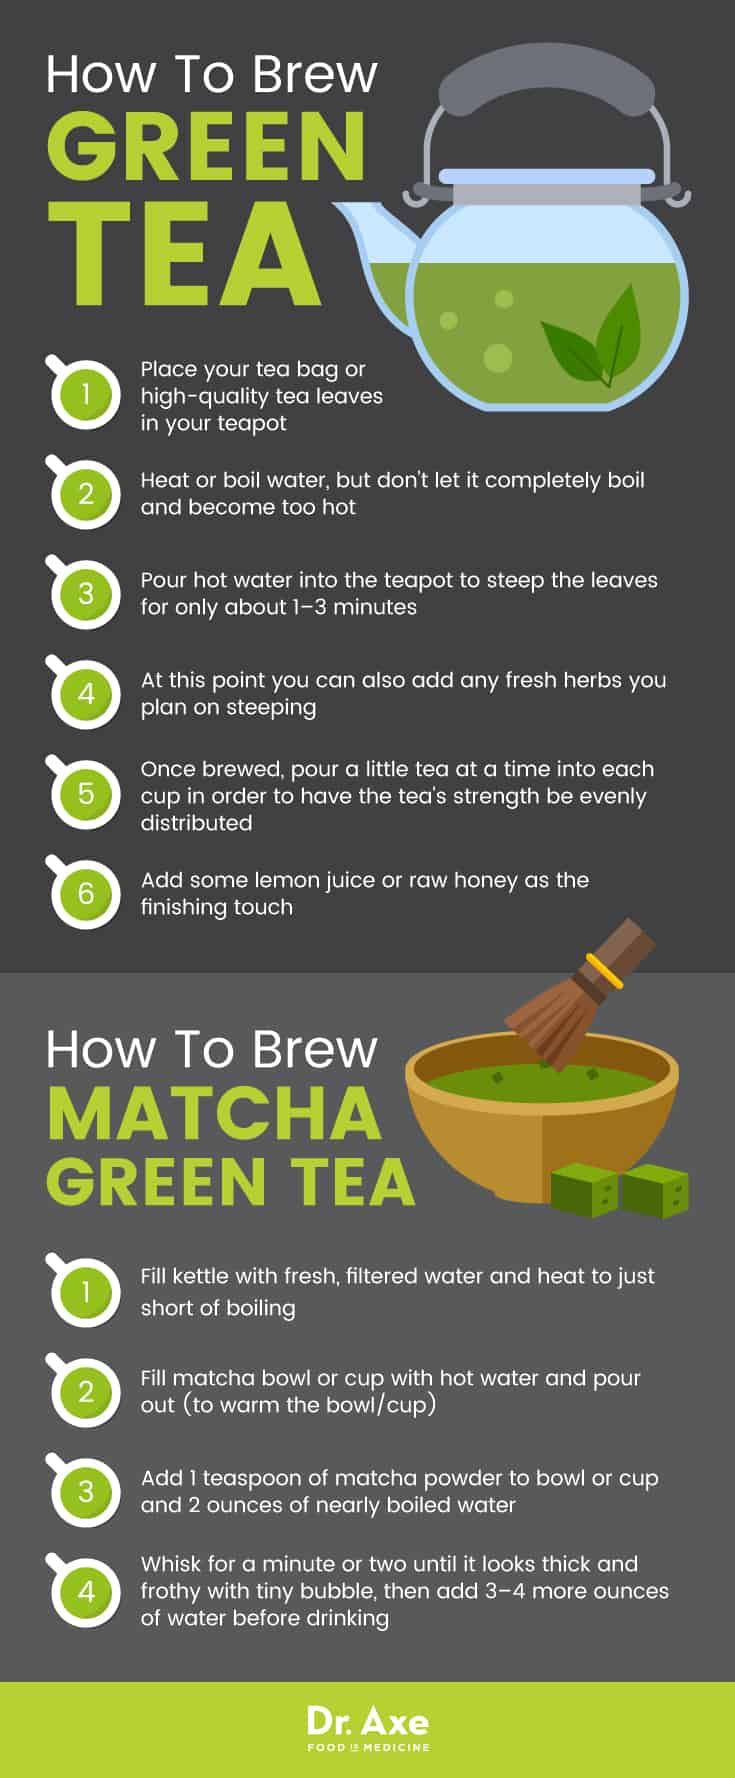 How to brew green tea - Dr. Axe